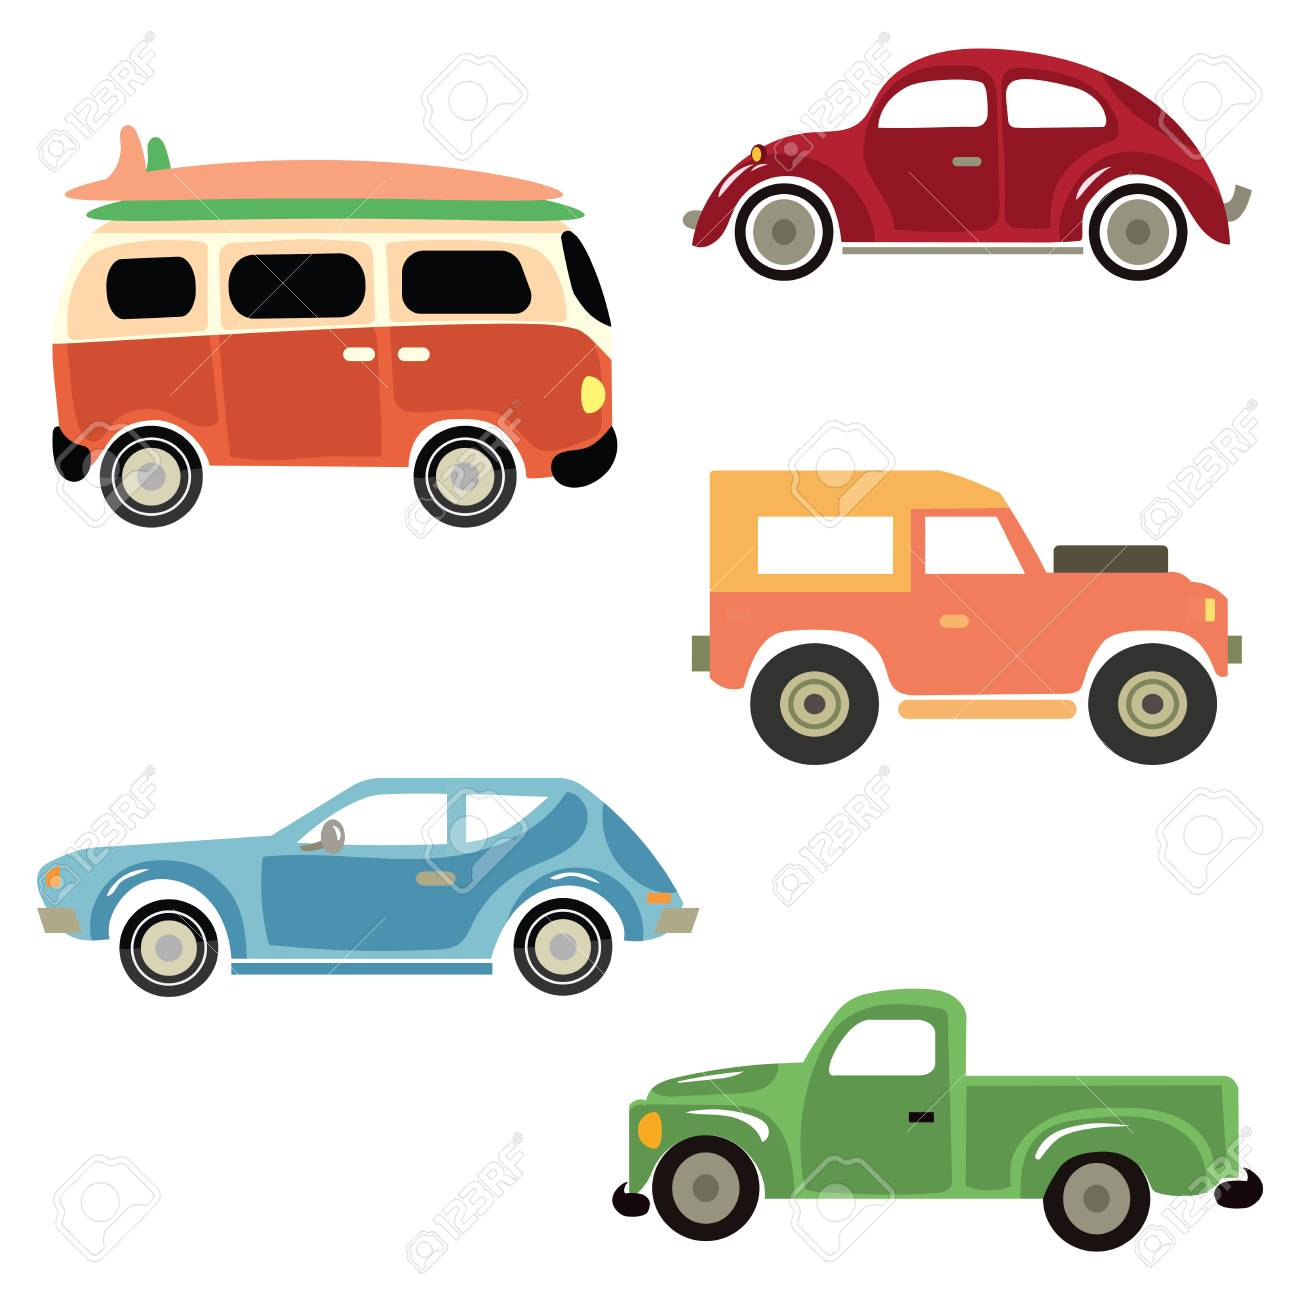 Collection Of Old Cars. Royalty Free Cliparts, Vectors, And Stock ...